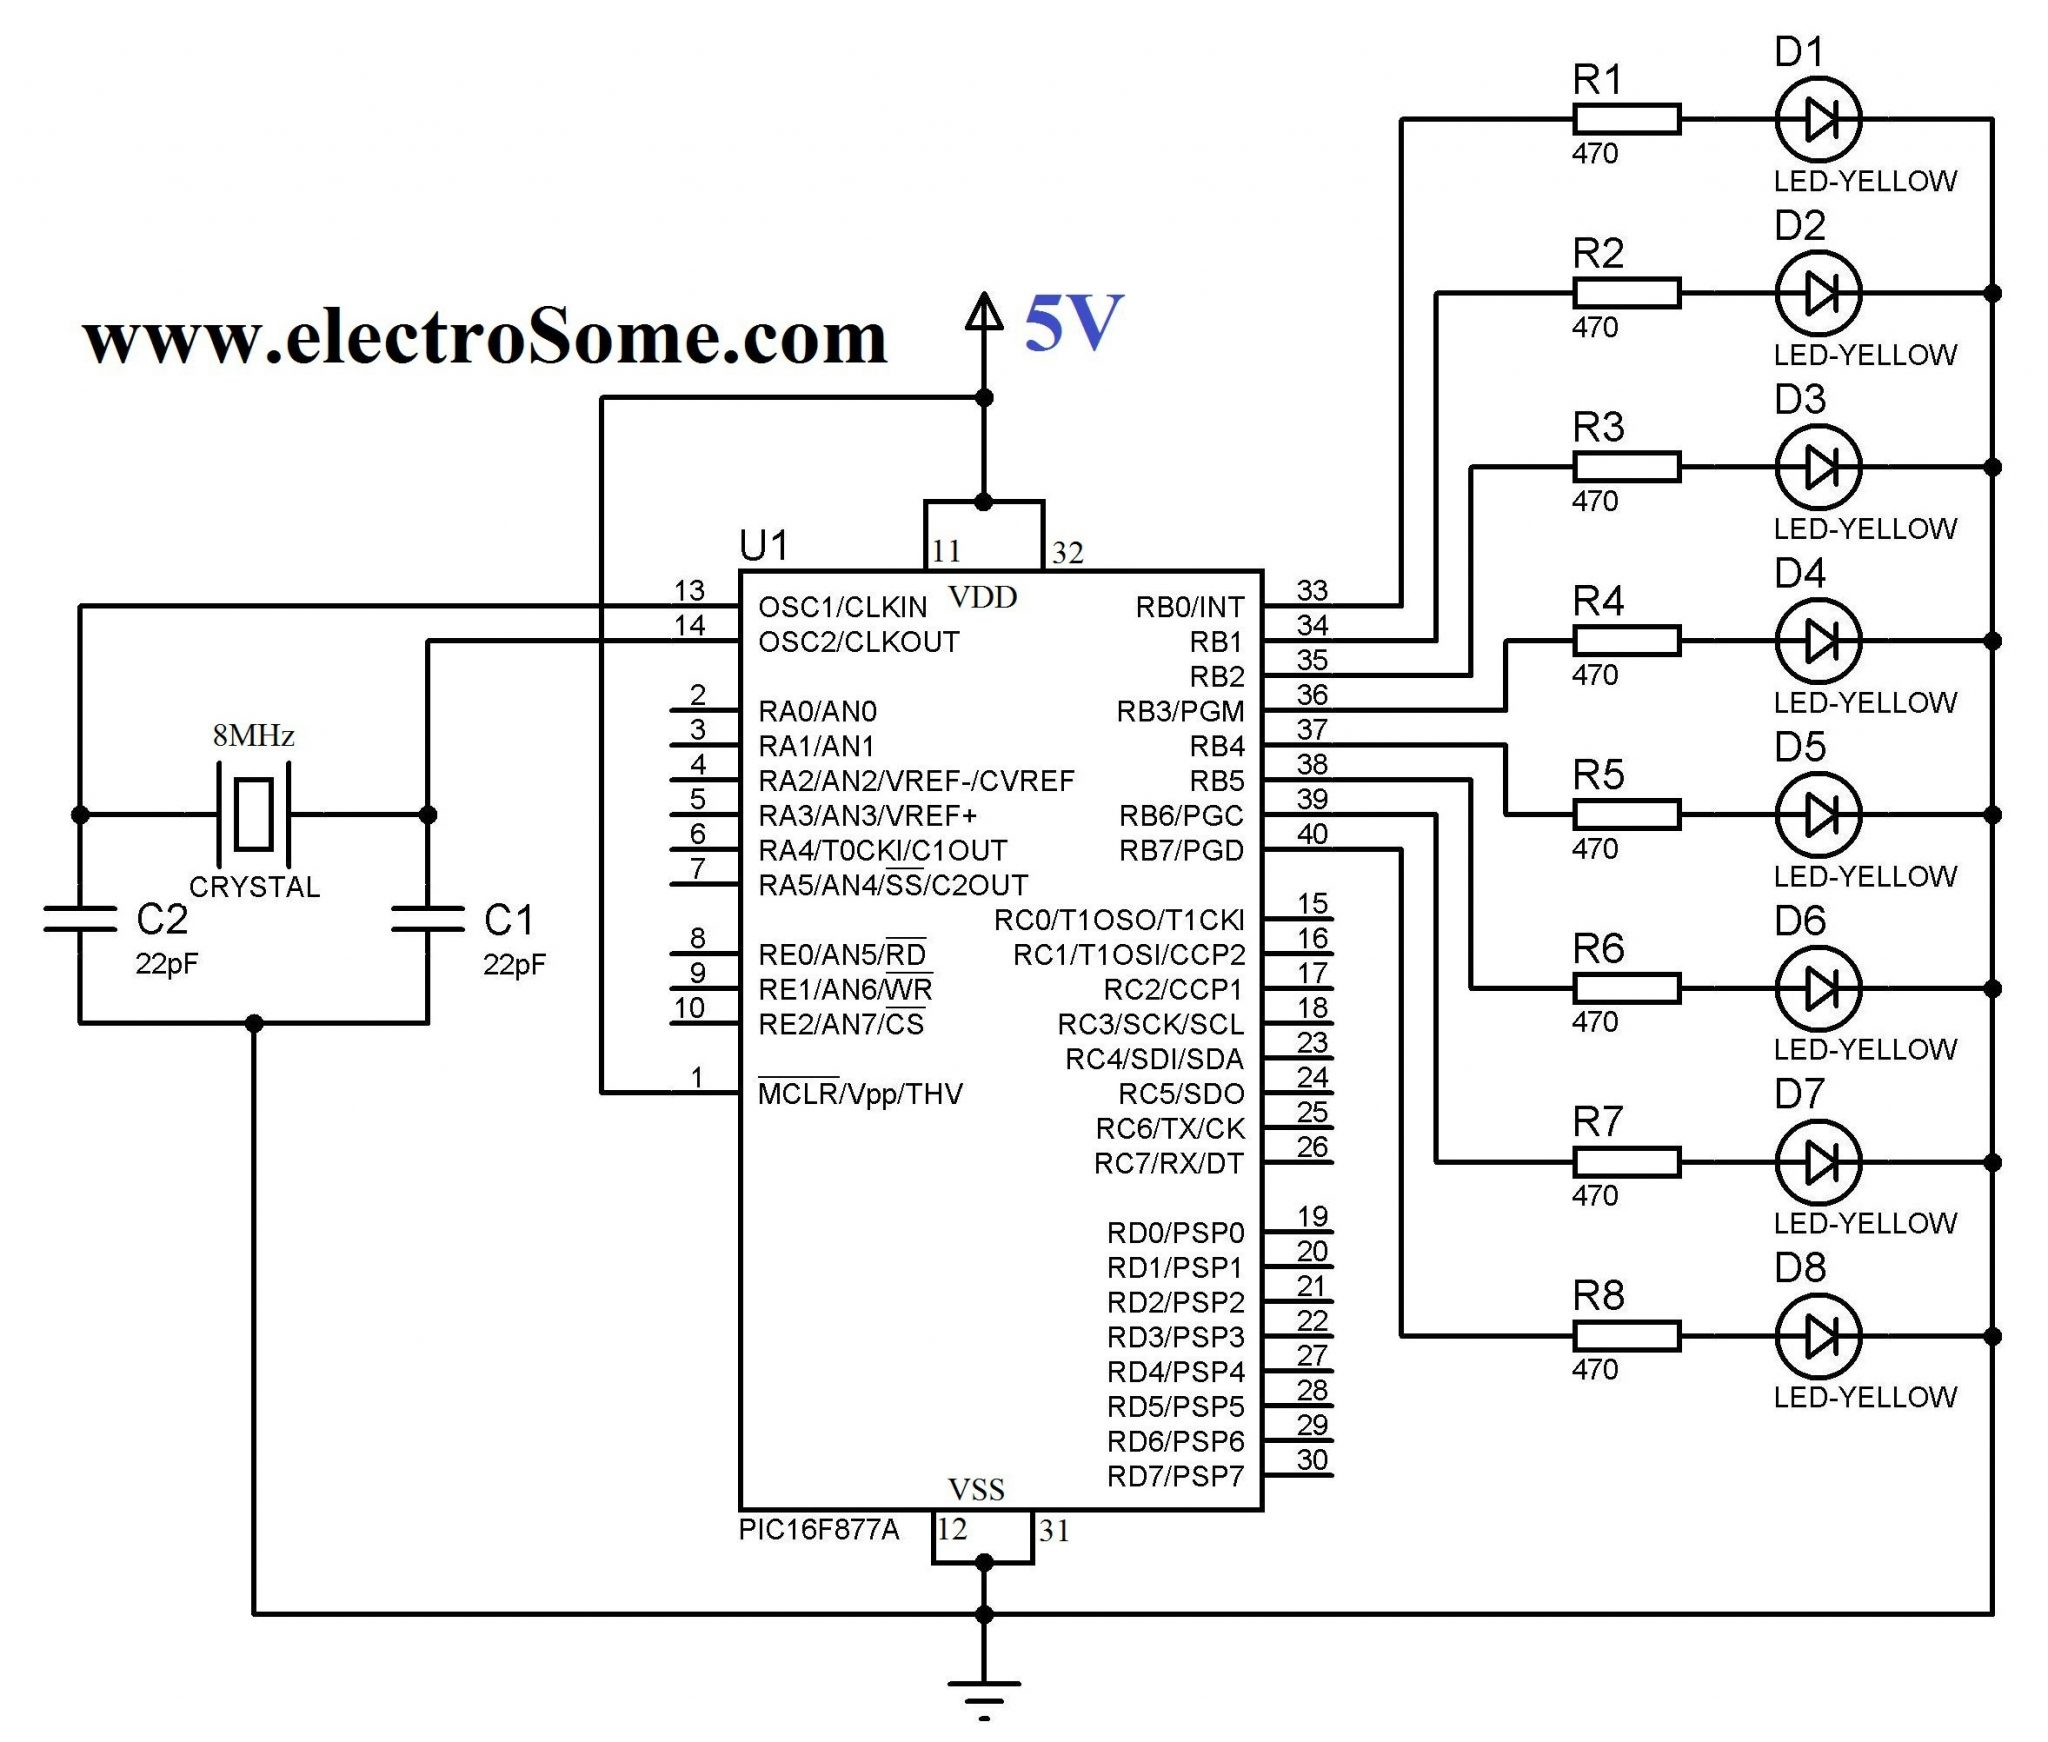 Blinking Led Using Pic Microcontroller Hi Tech C Compiler And Mplab Pwm Dimmer Ne555 Circuit Block Diagrams Diagram